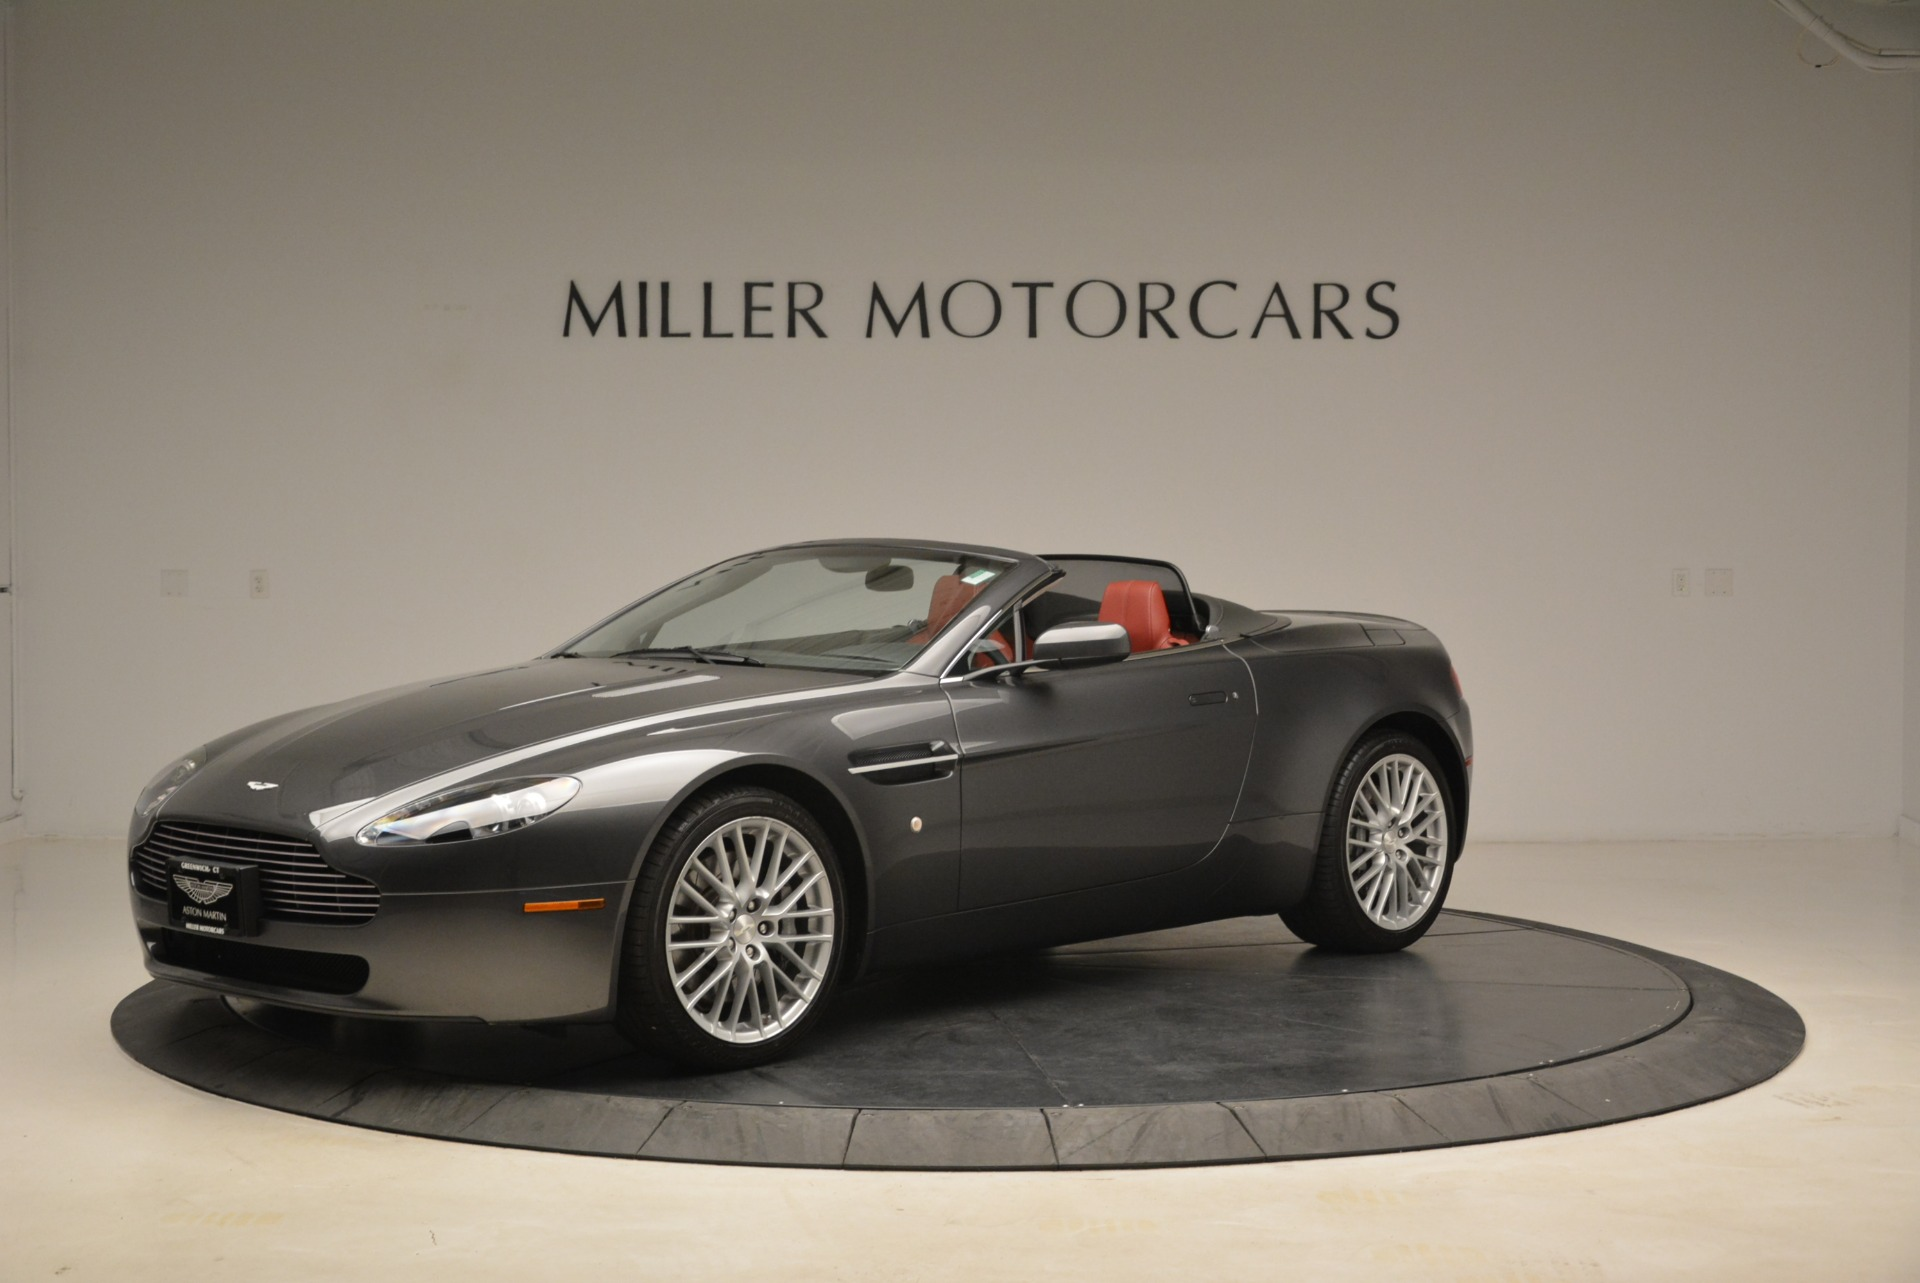 Used 2009 Aston Martin V8 Vantage Roadster For Sale In Greenwich, CT 2123_p2